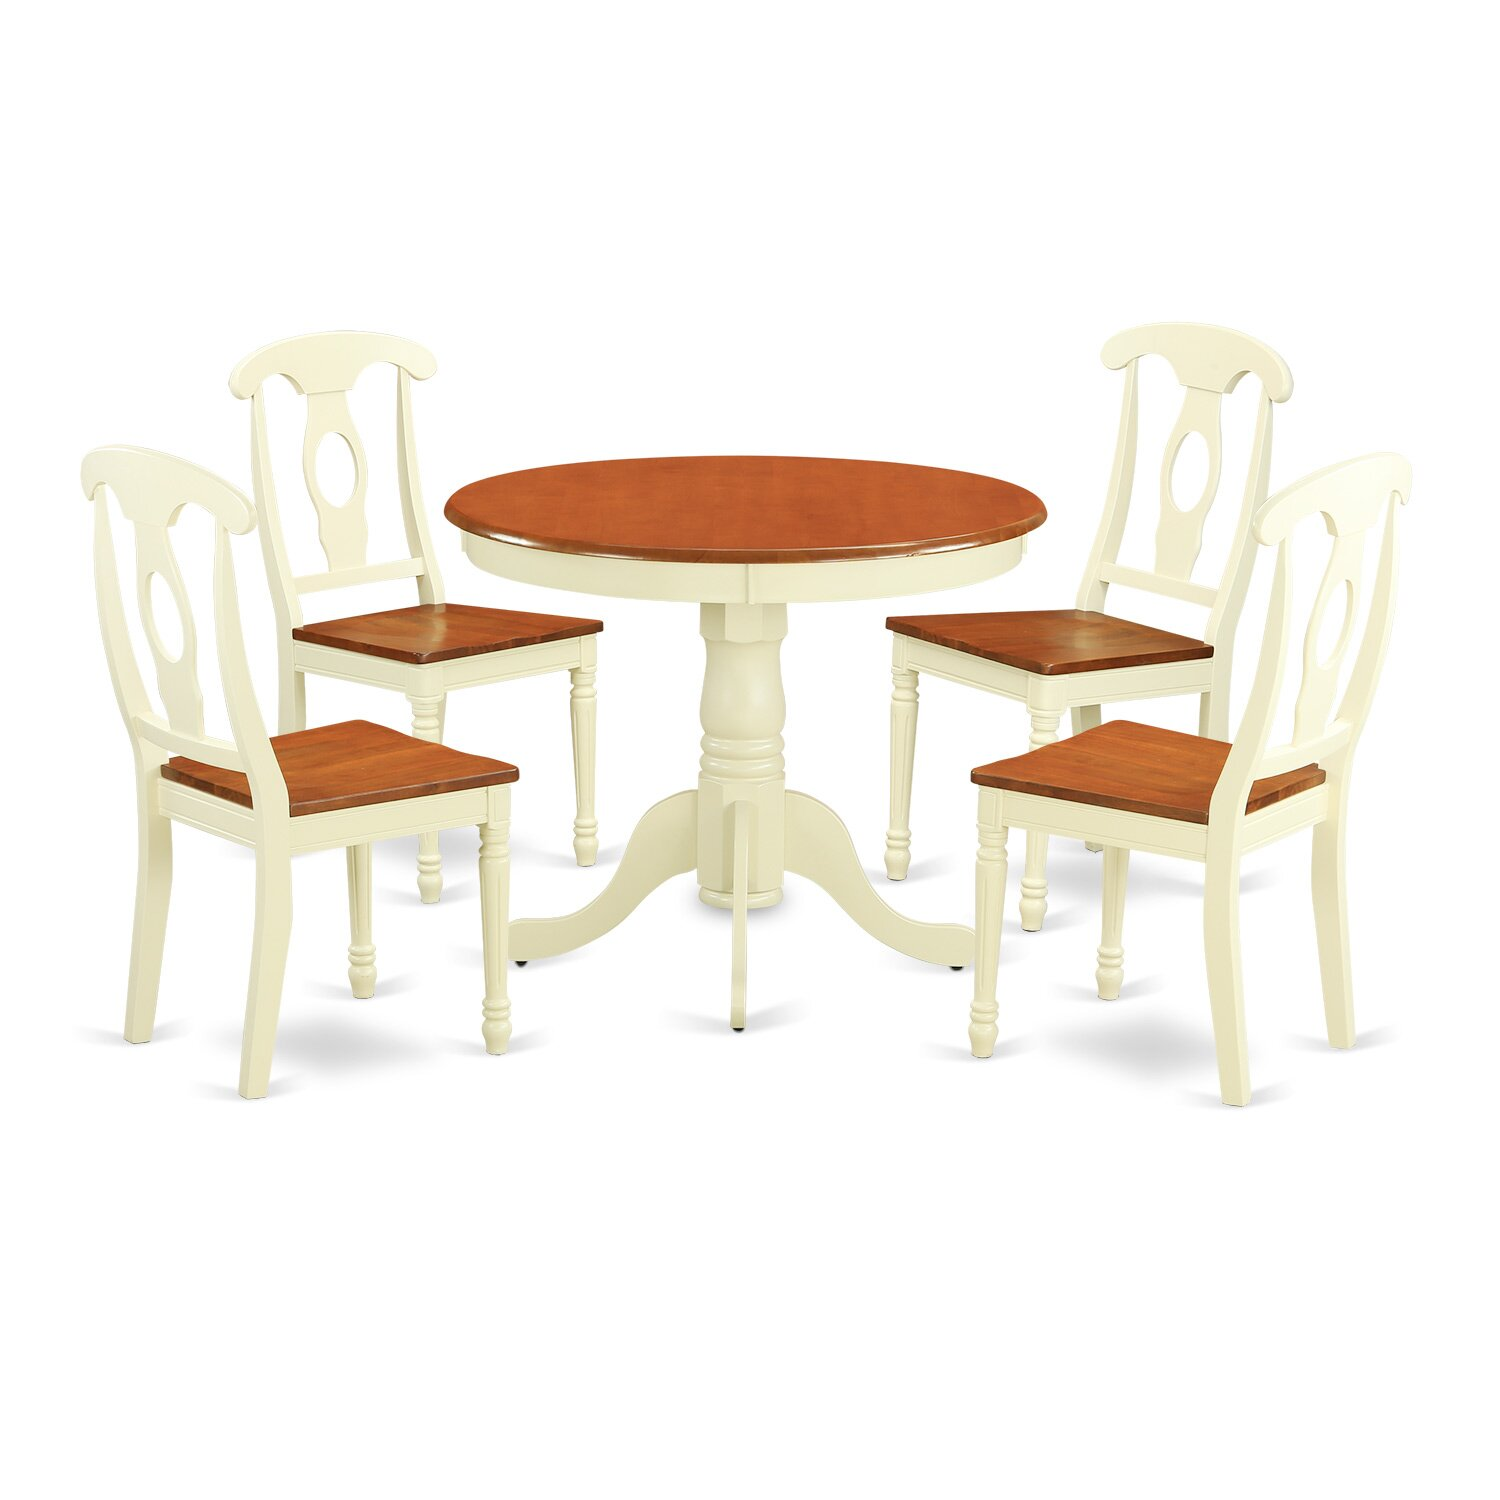 East west 5 piece dining set wayfair for Kitchen dining table chairs